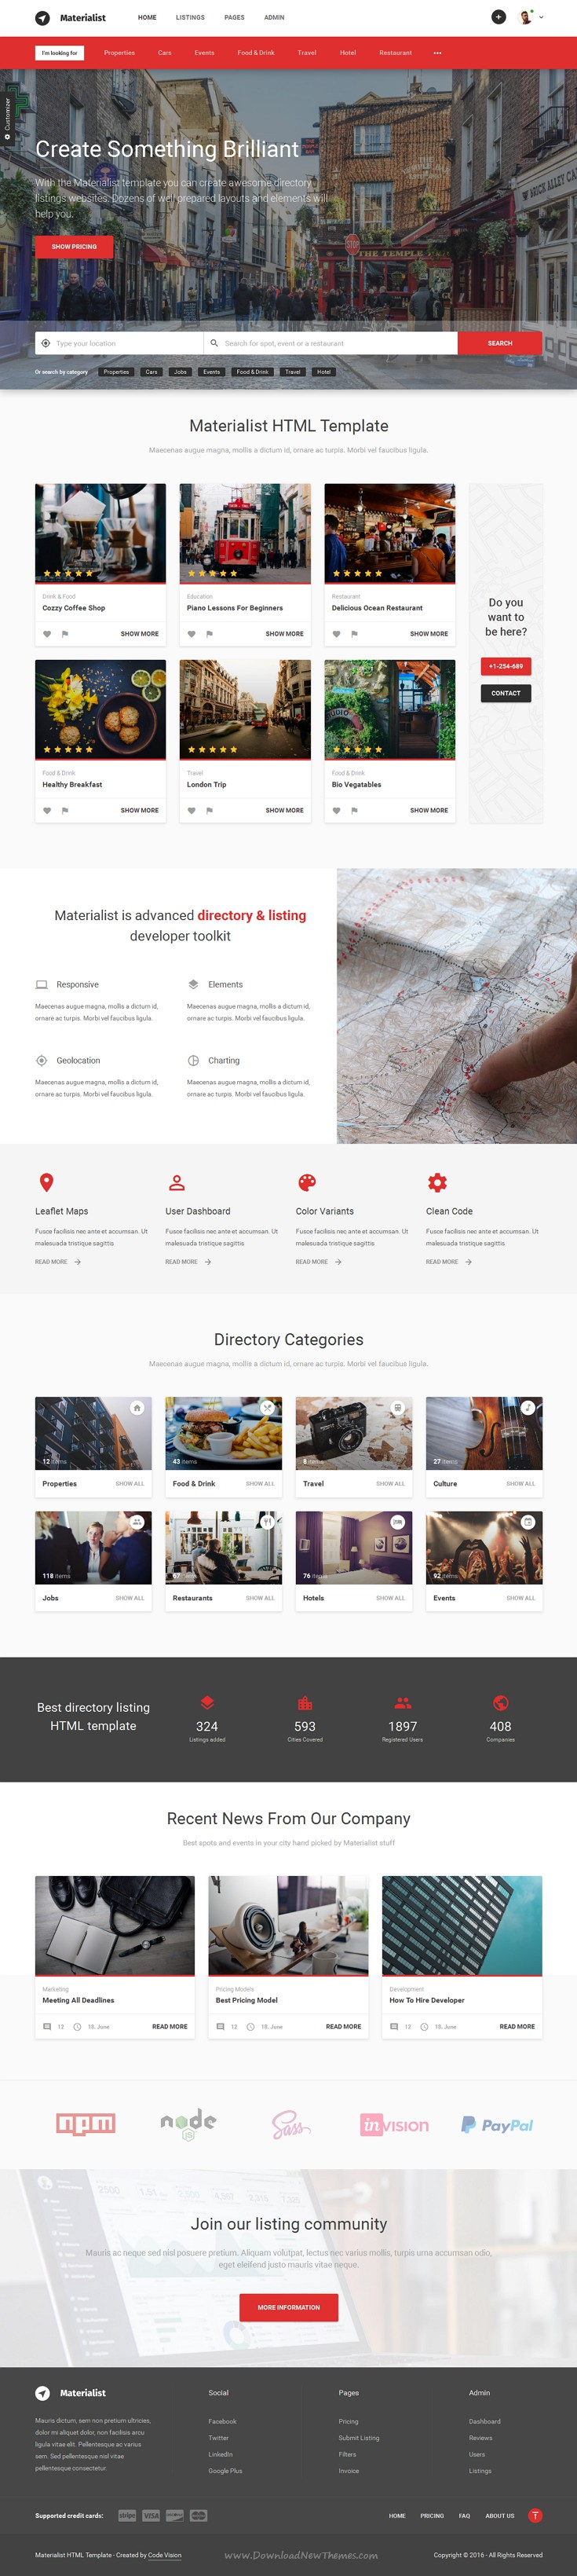 Materialist - Material Directory HTML Template | Material design